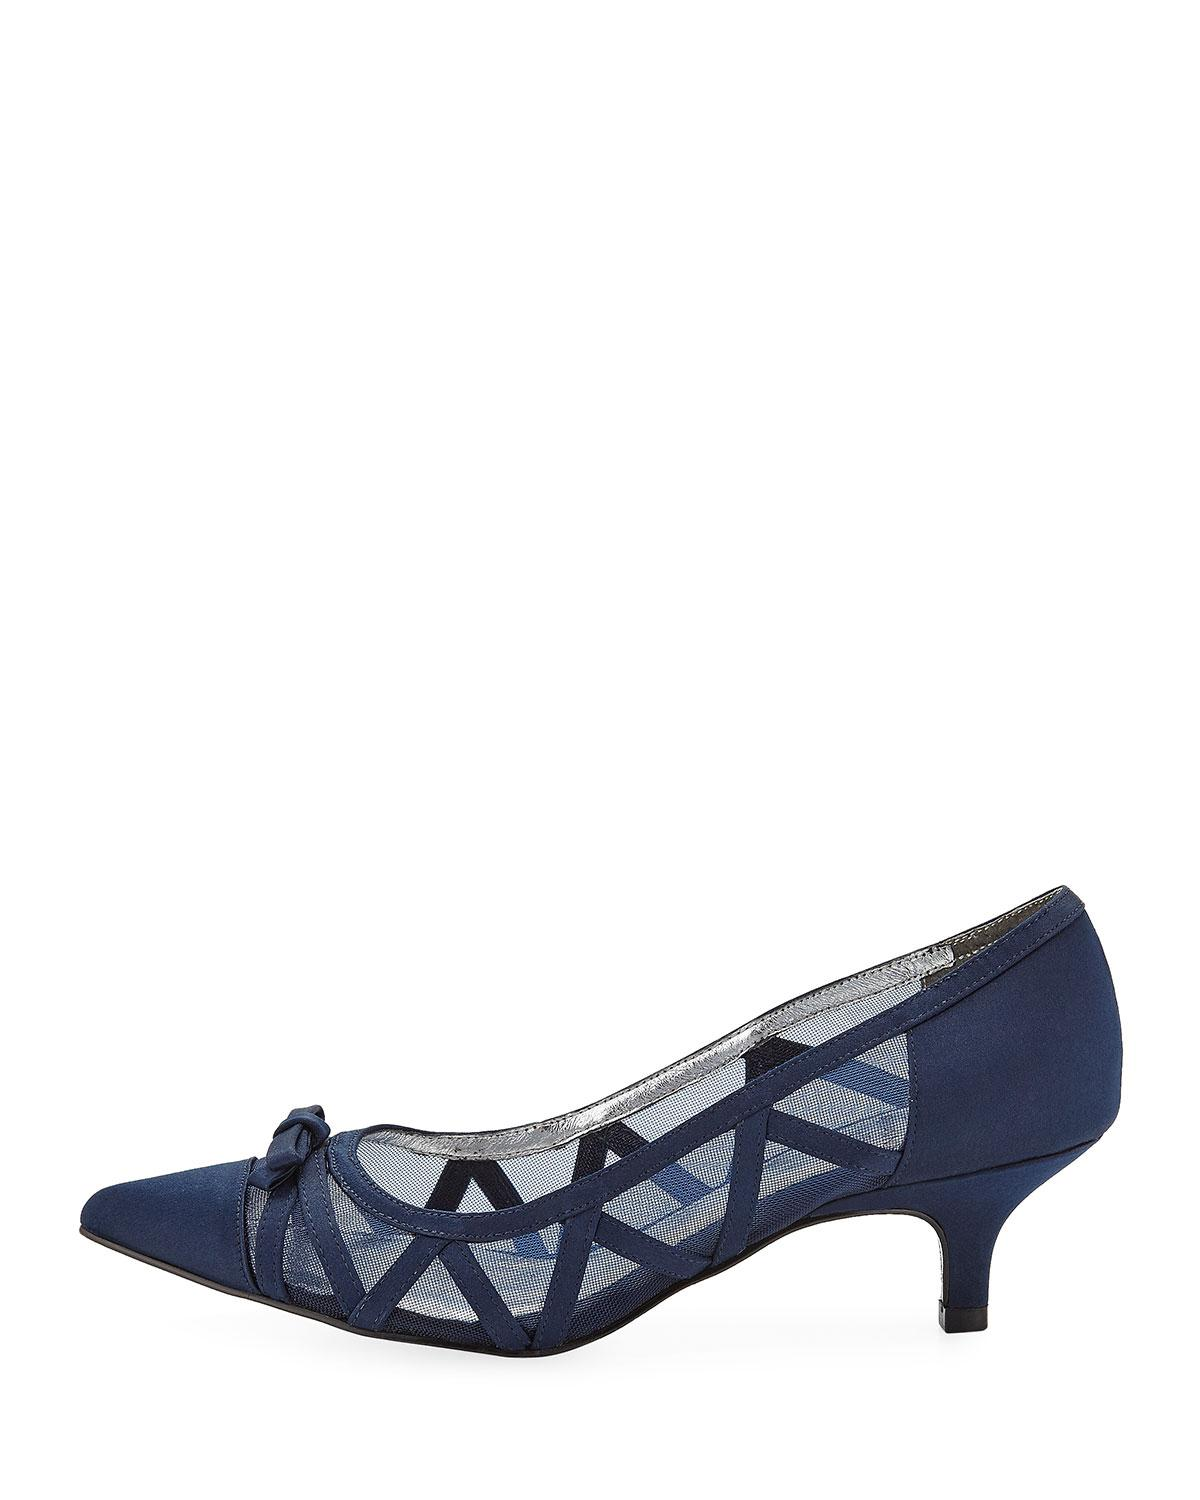 20041809784e Lyst - Adrianna Papell Lana Pointed Mesh Pumps in Black